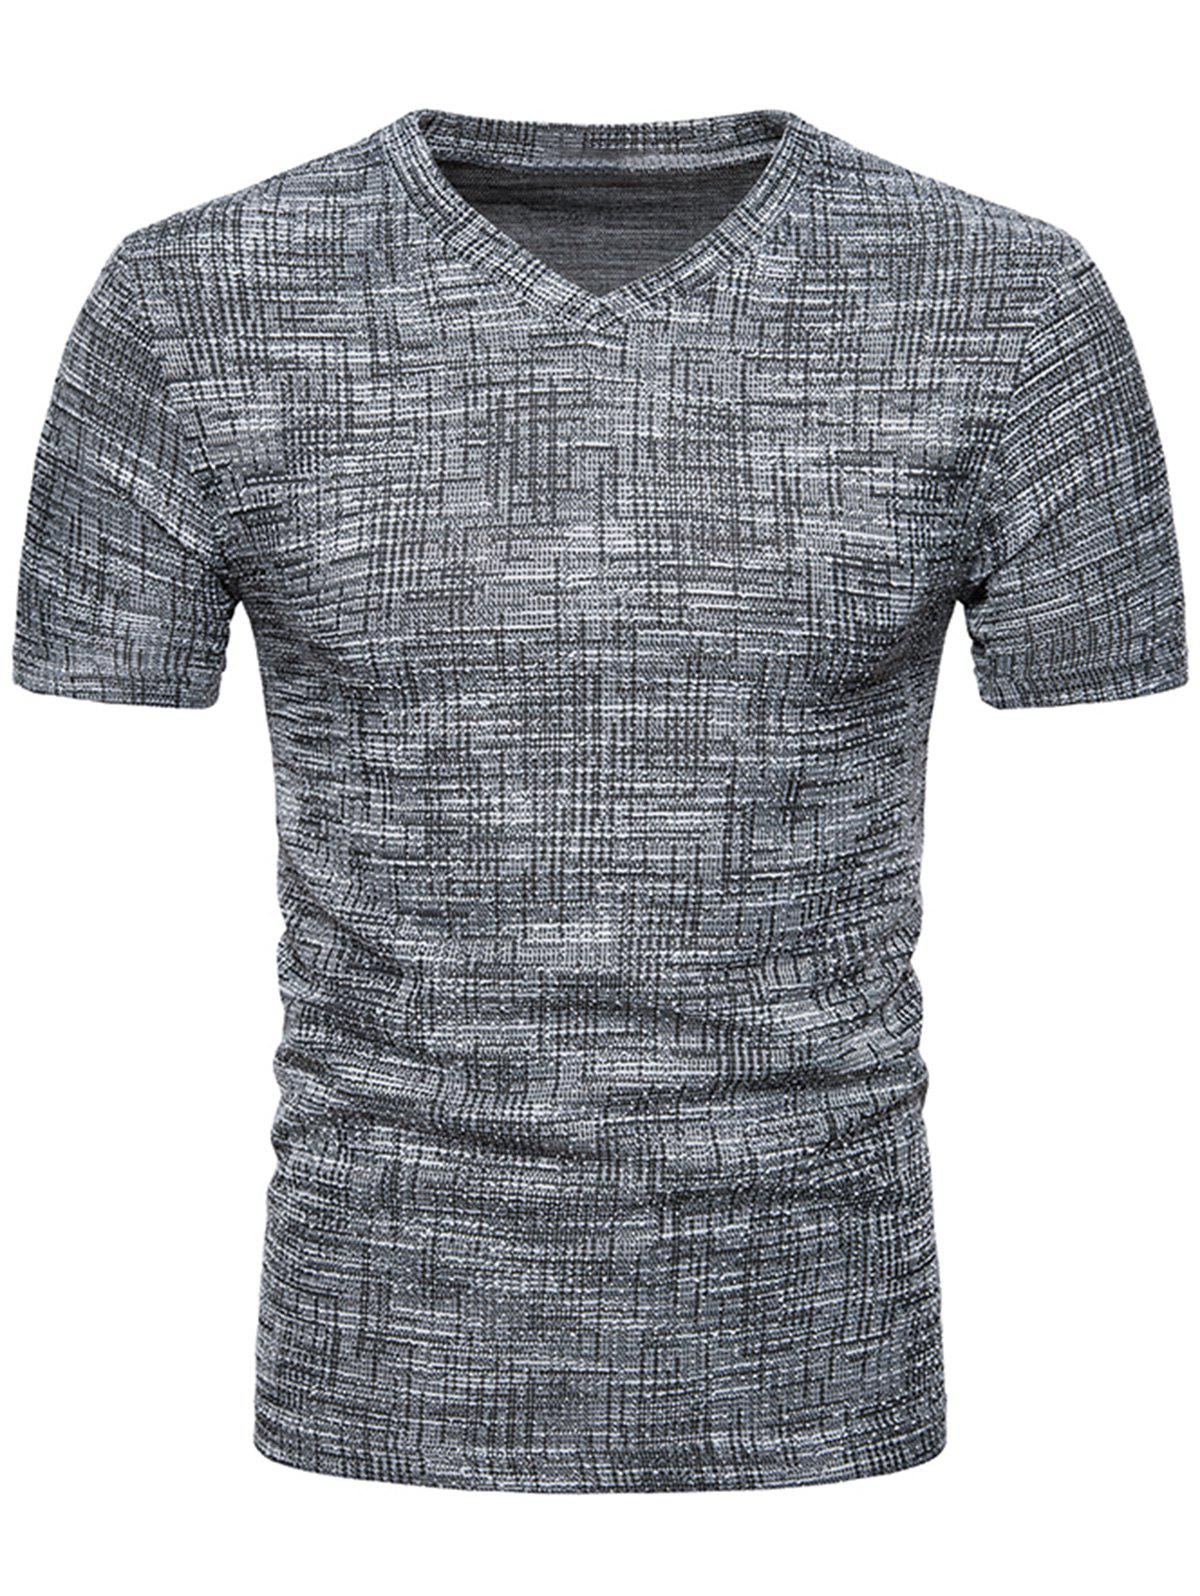 Fancy Knitted Design Short Sleeve T-shirt